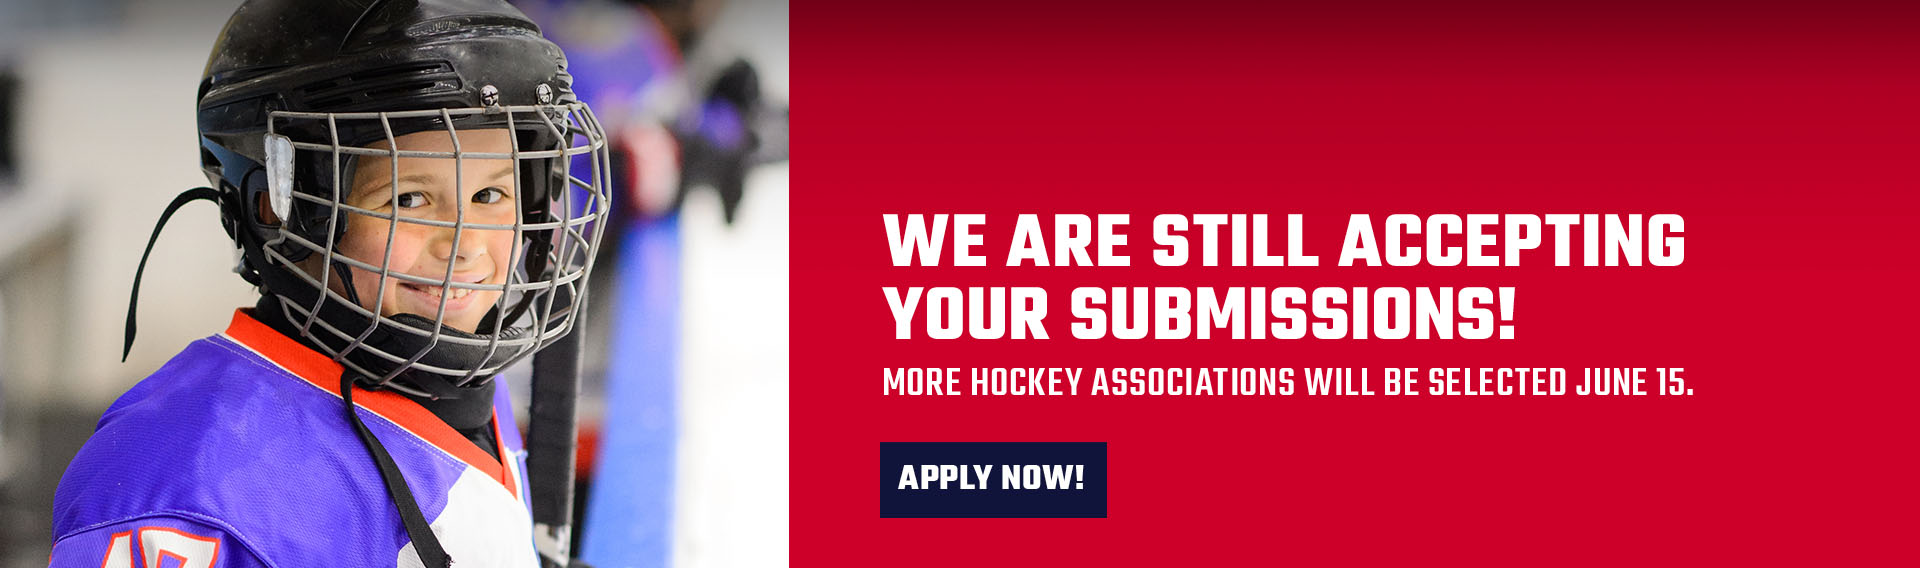 We are still accepting your submissions! More hockey associations willbe selected June 15.